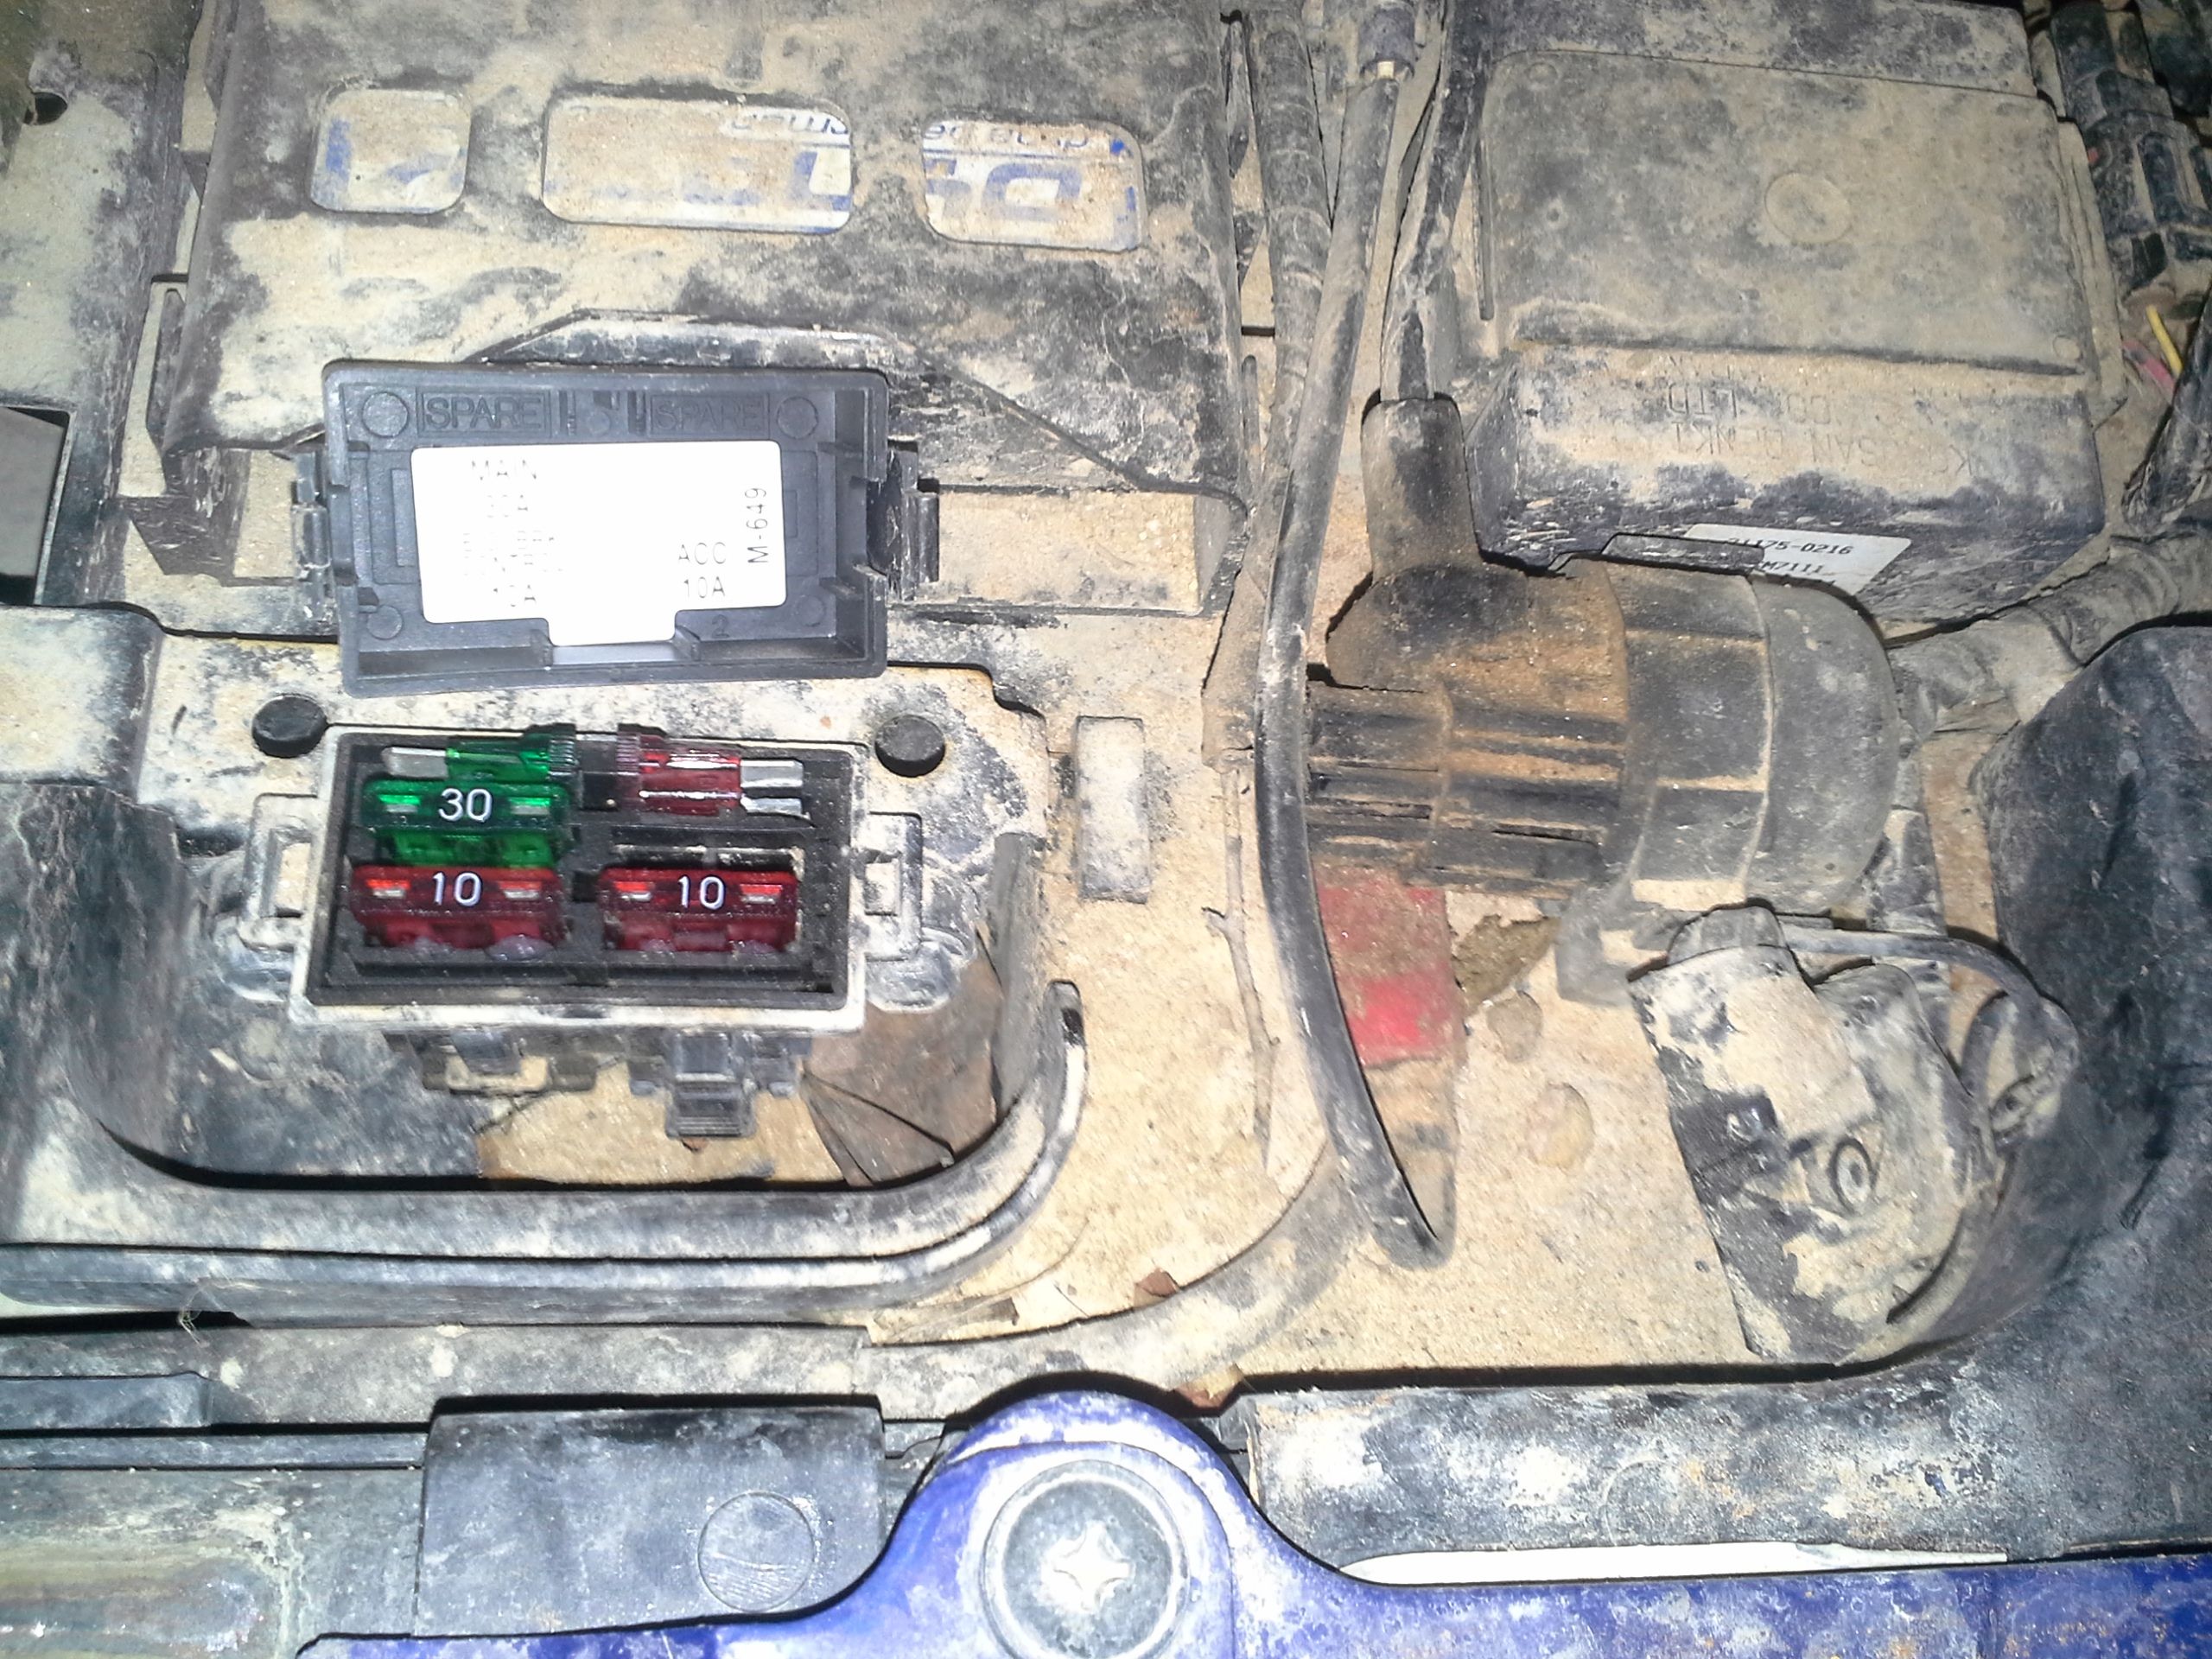 2012 650i fuse box wiring mudinmyblood forums click image for larger version 20140323 140451 jpg views 2048 size 1 87